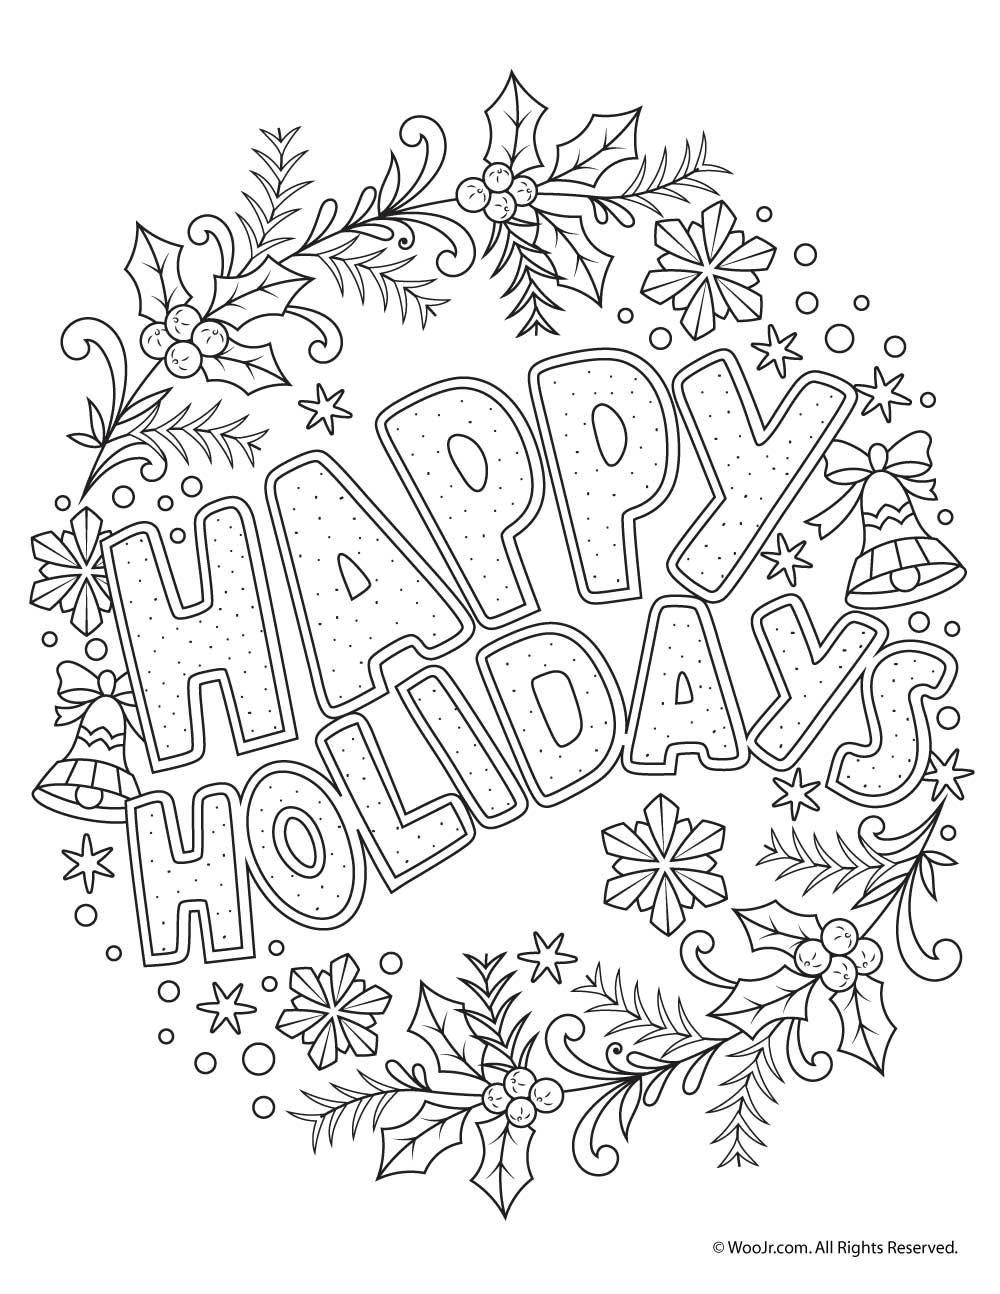 Happy Holidays Coloring Pages Happy Holidays Adult Coloring Freebie  Woo Jrkids Activities